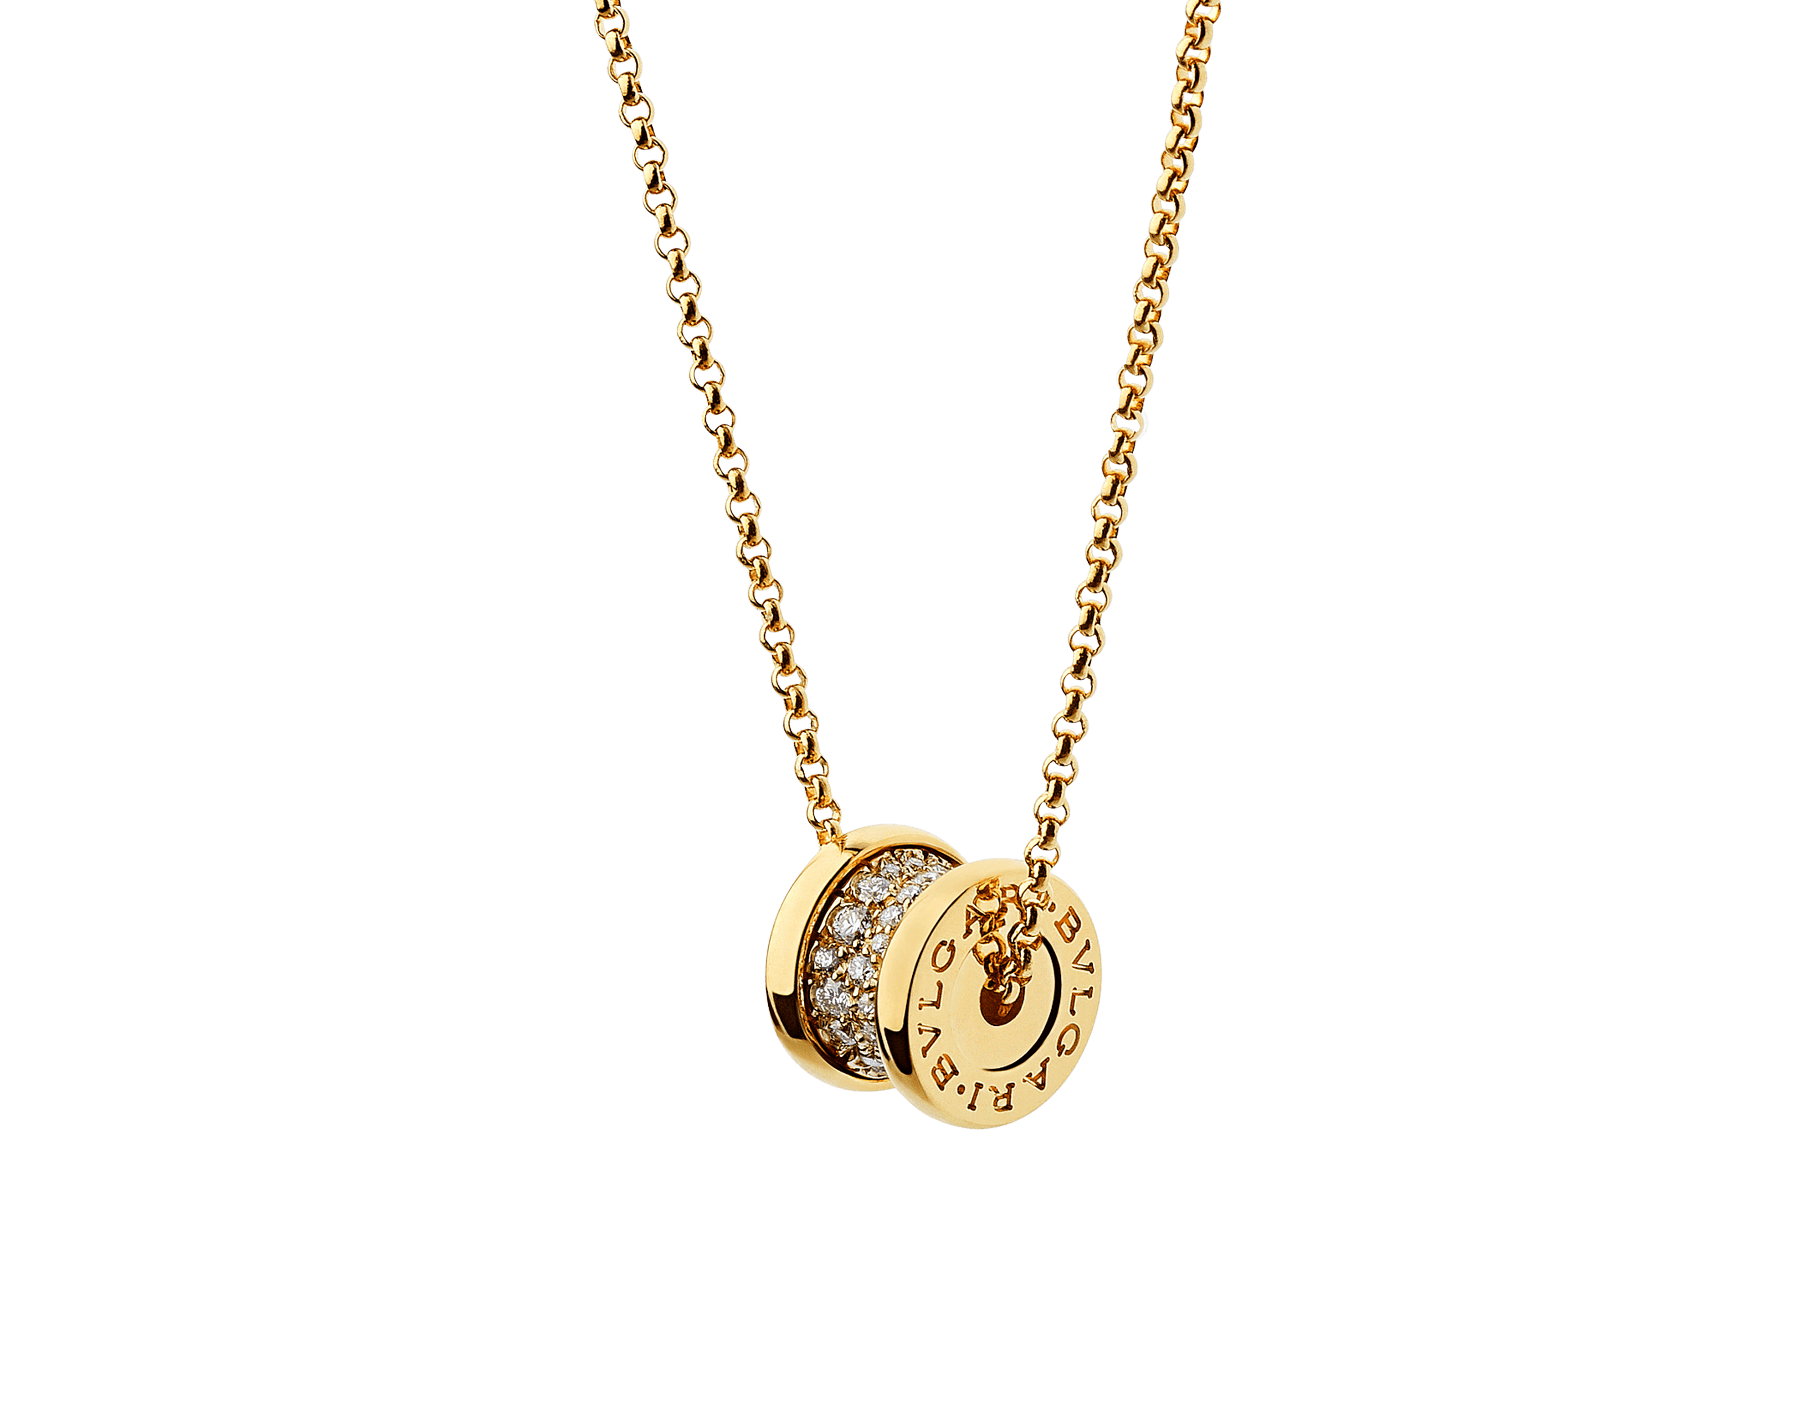 B.zero1 18 kt yellow gold necklace set with pavé diamonds on the spiral 357496 image 3